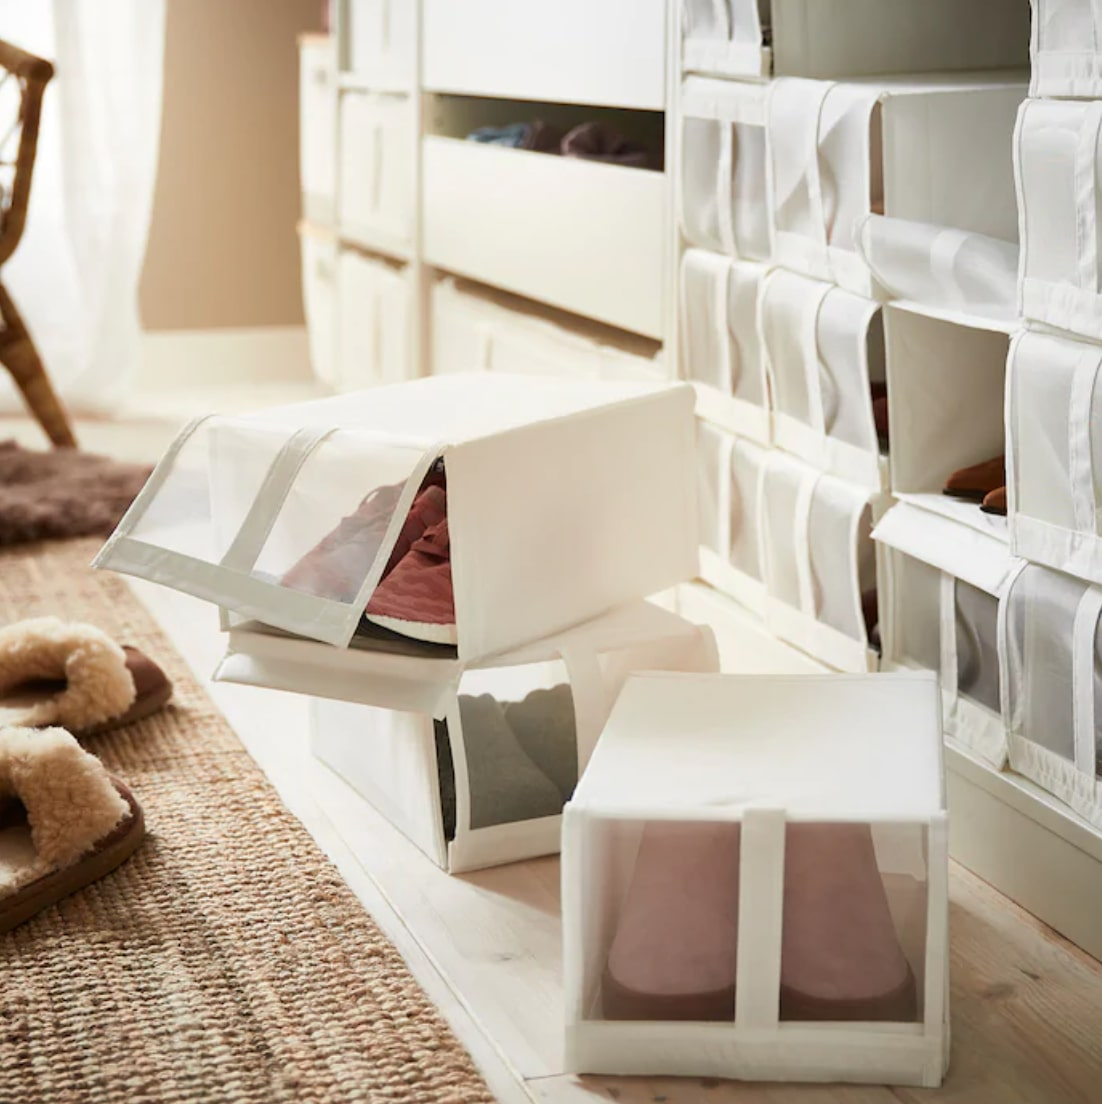 squarerooms-skubb-shoe-cubicles-repurposed-storage-organisers-ikea